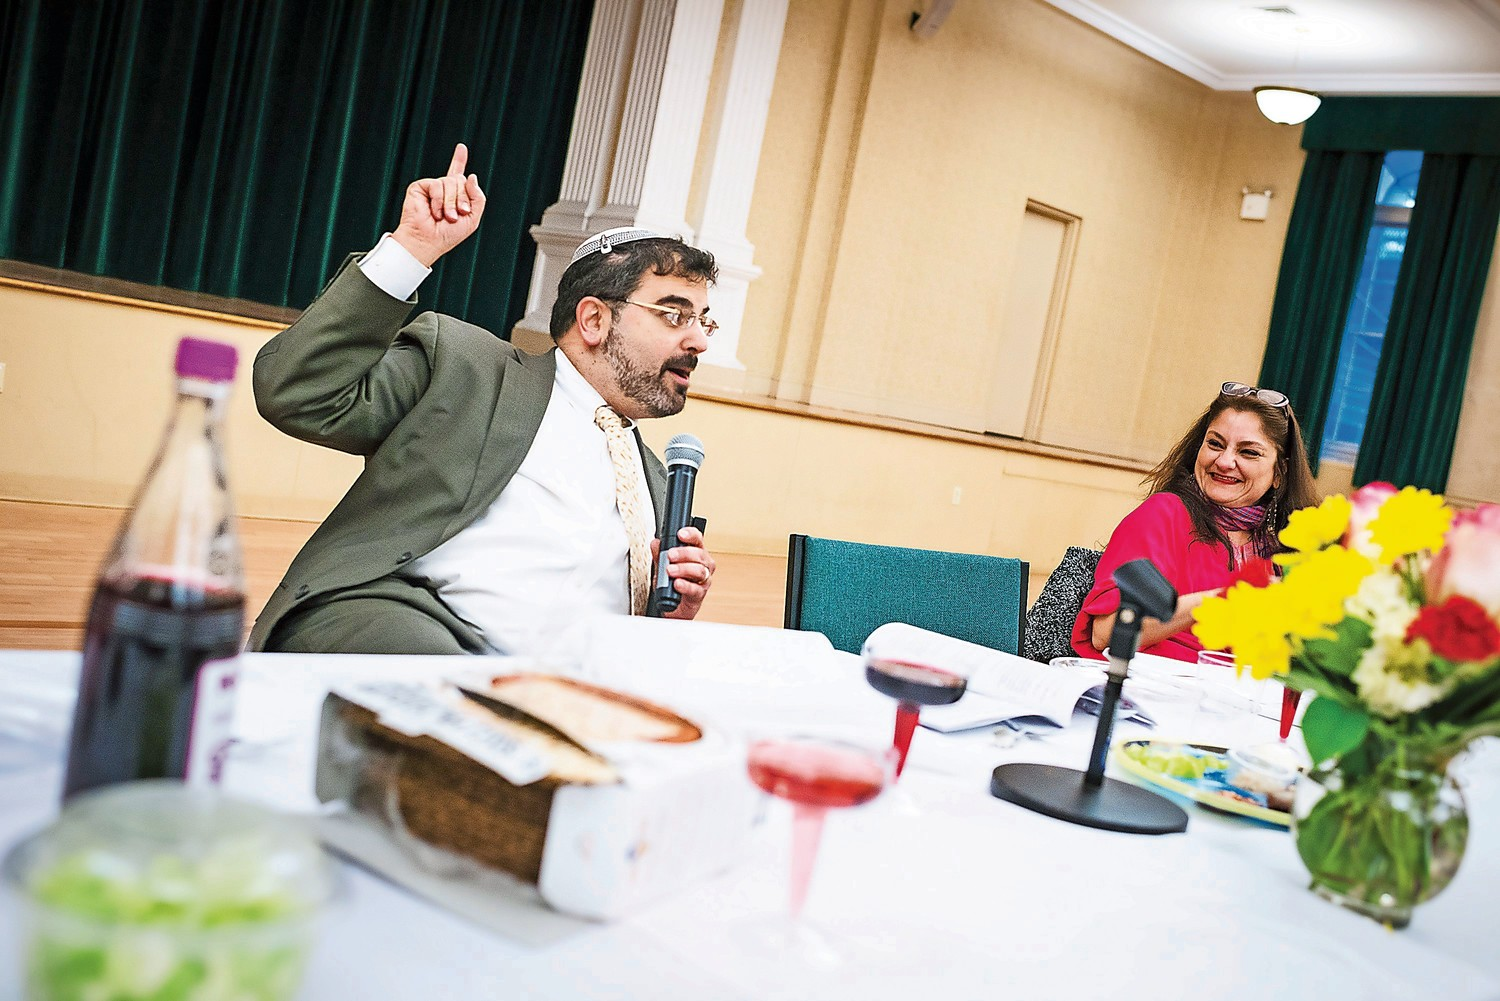 Rabbi Asher Lopatin speaks at a seder celebration at Manhattan College in 2015. Rabbi Lopatin announced that he will step down as president of the school at the end of July.